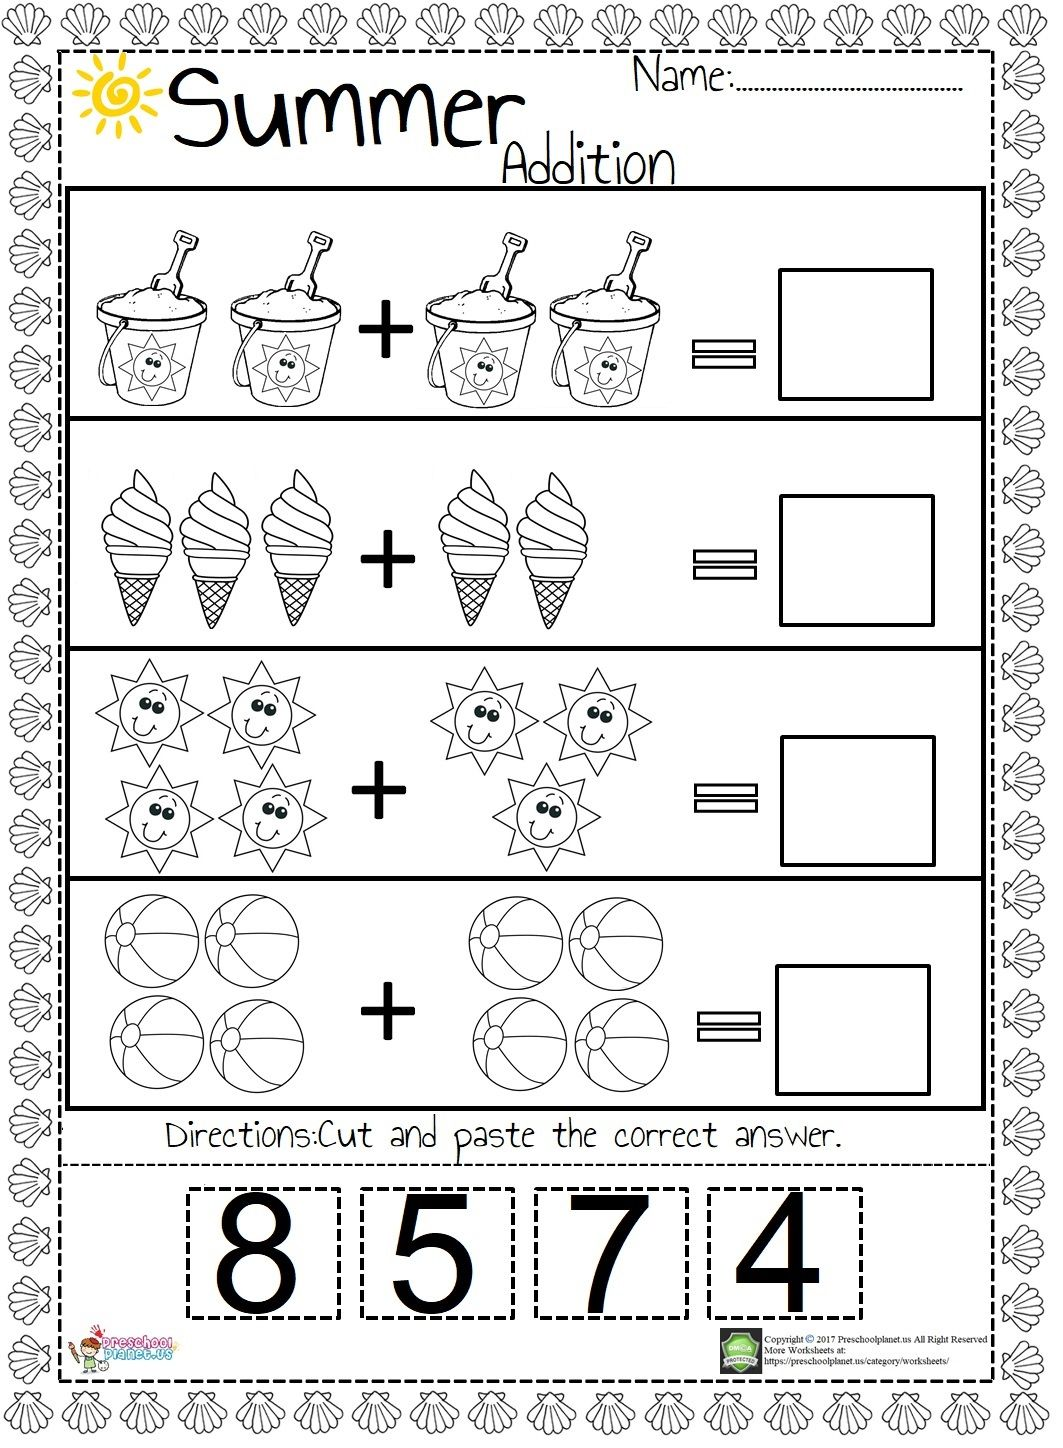 Summer Addition Worksheet   Kindergarten addition worksheets [ 1448 x 1063 Pixel ]